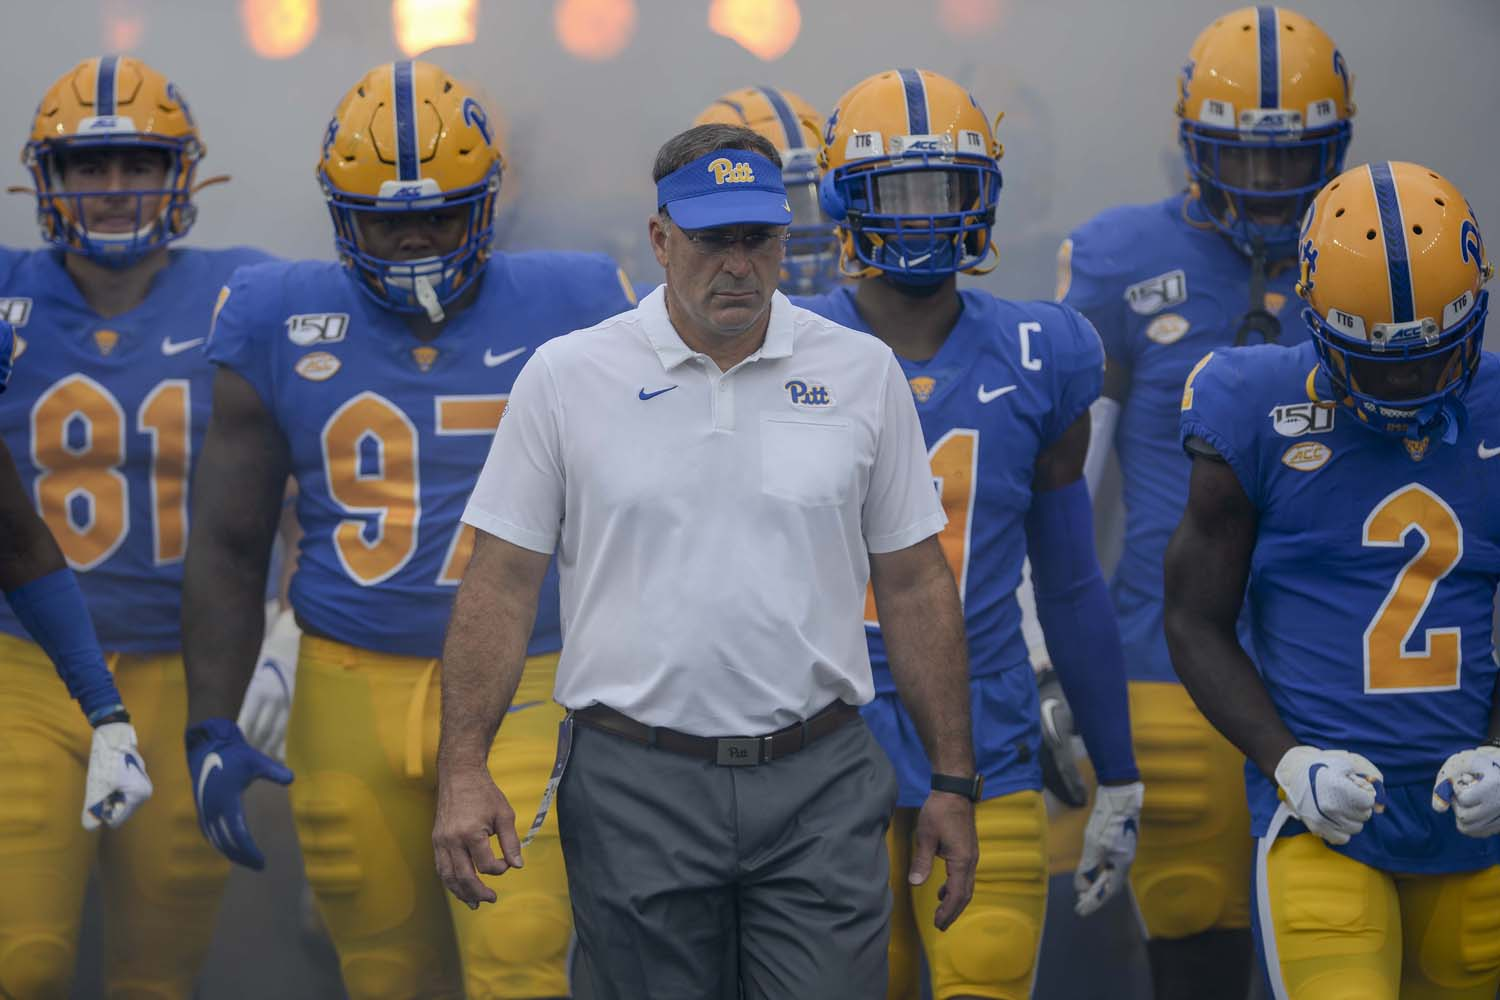 Head coach Narduzzi enters Heinz Field before Saturday's matchup with Ohio University.